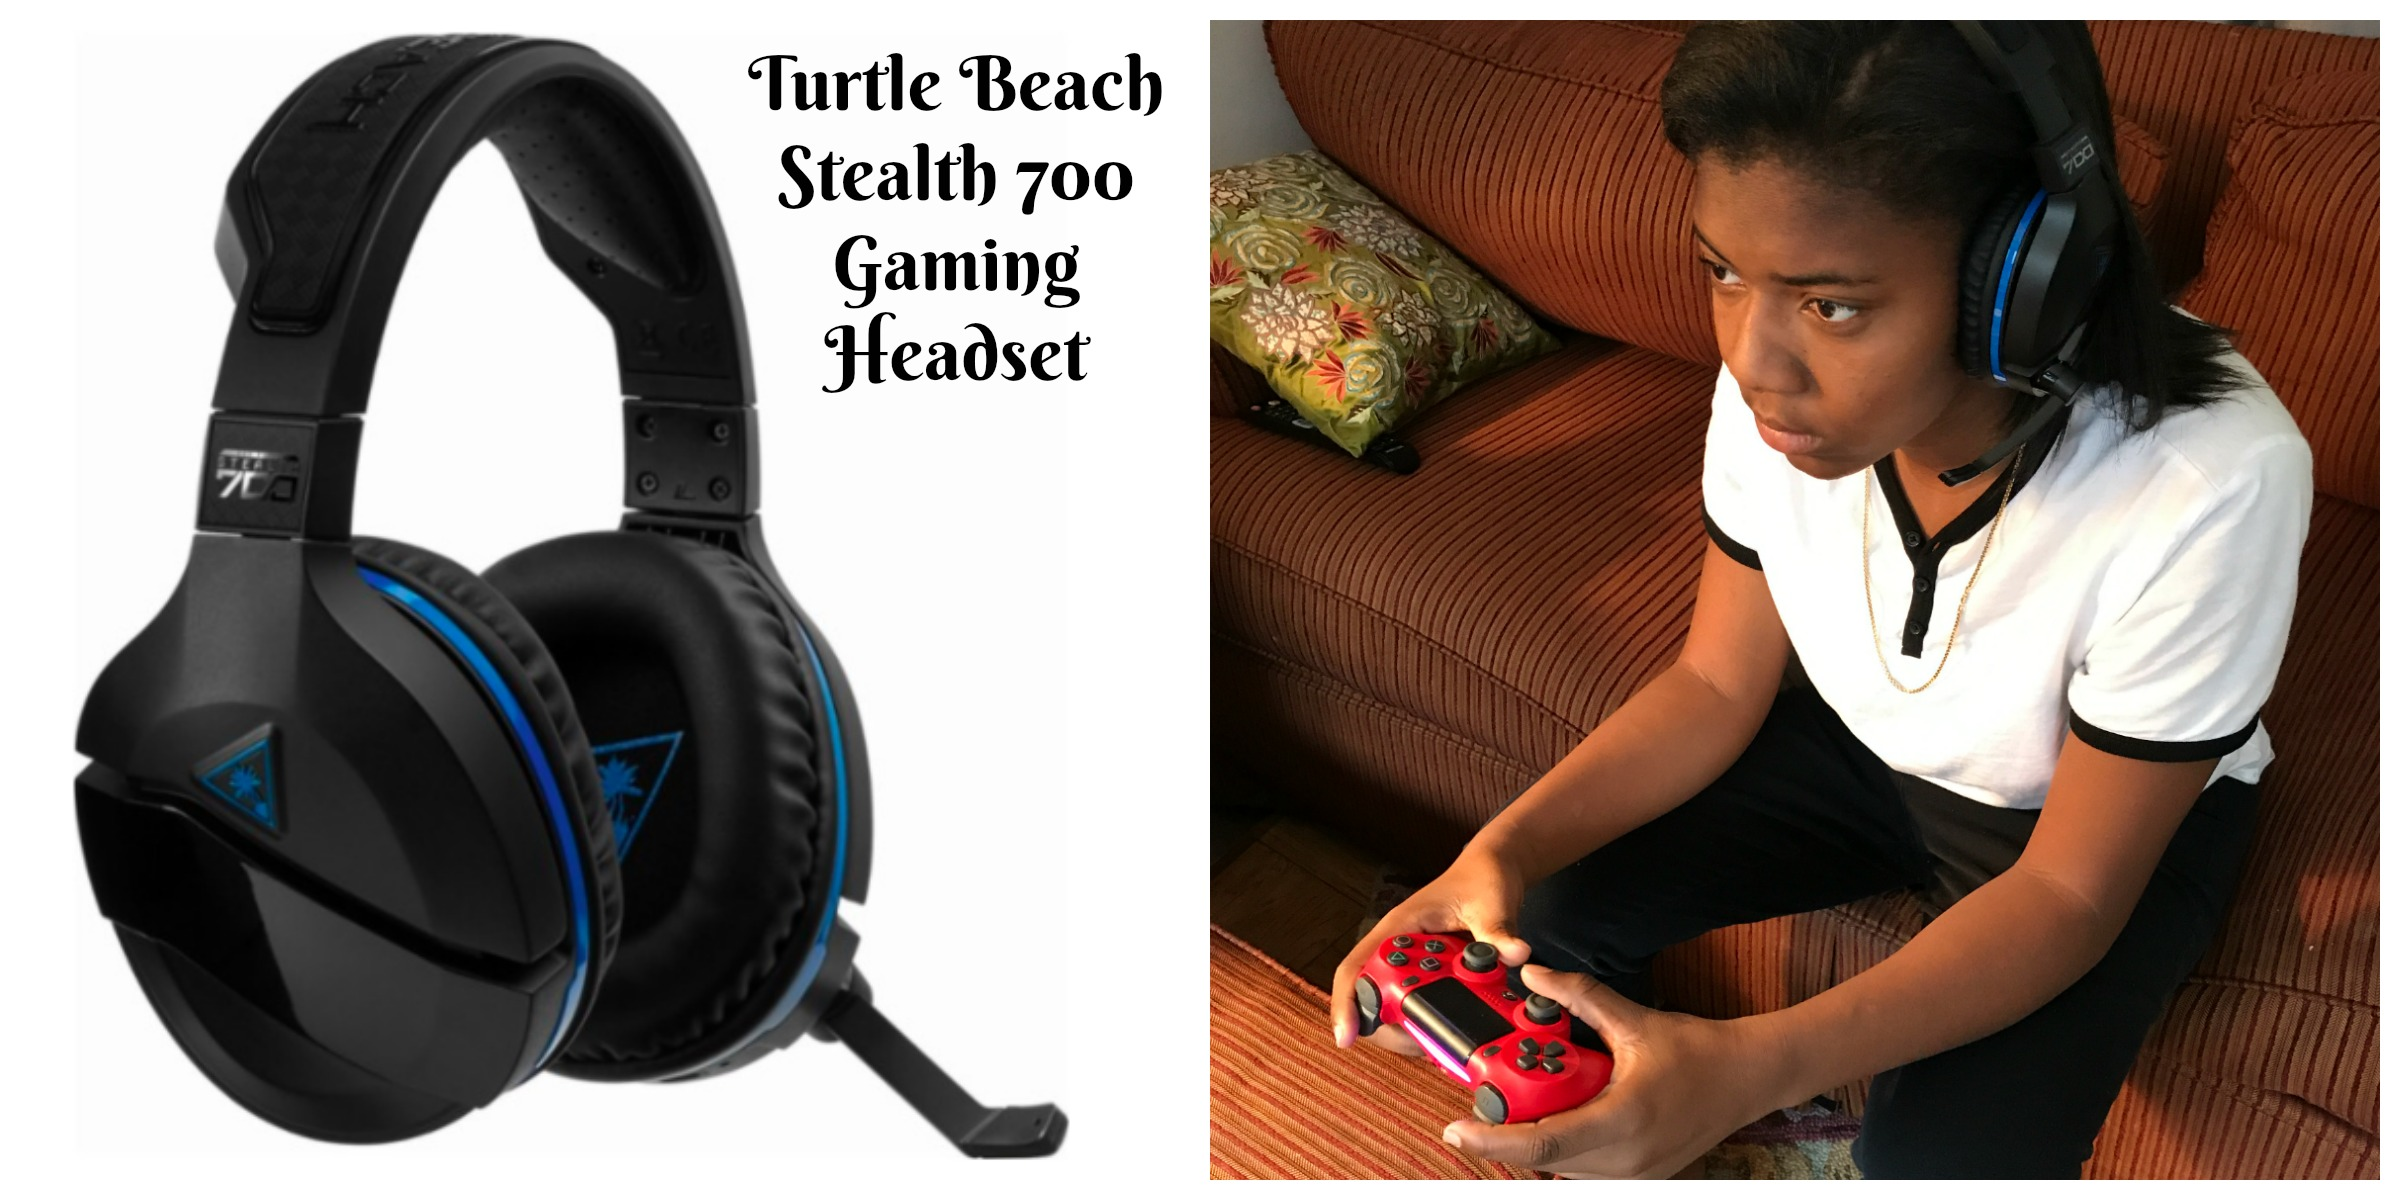 Enhance Your Game Play With The Turtle Beach Stealth 700 Gaming Headset For Ps4 Turtlebeach Bestbuy Ad Nyc Single Mom